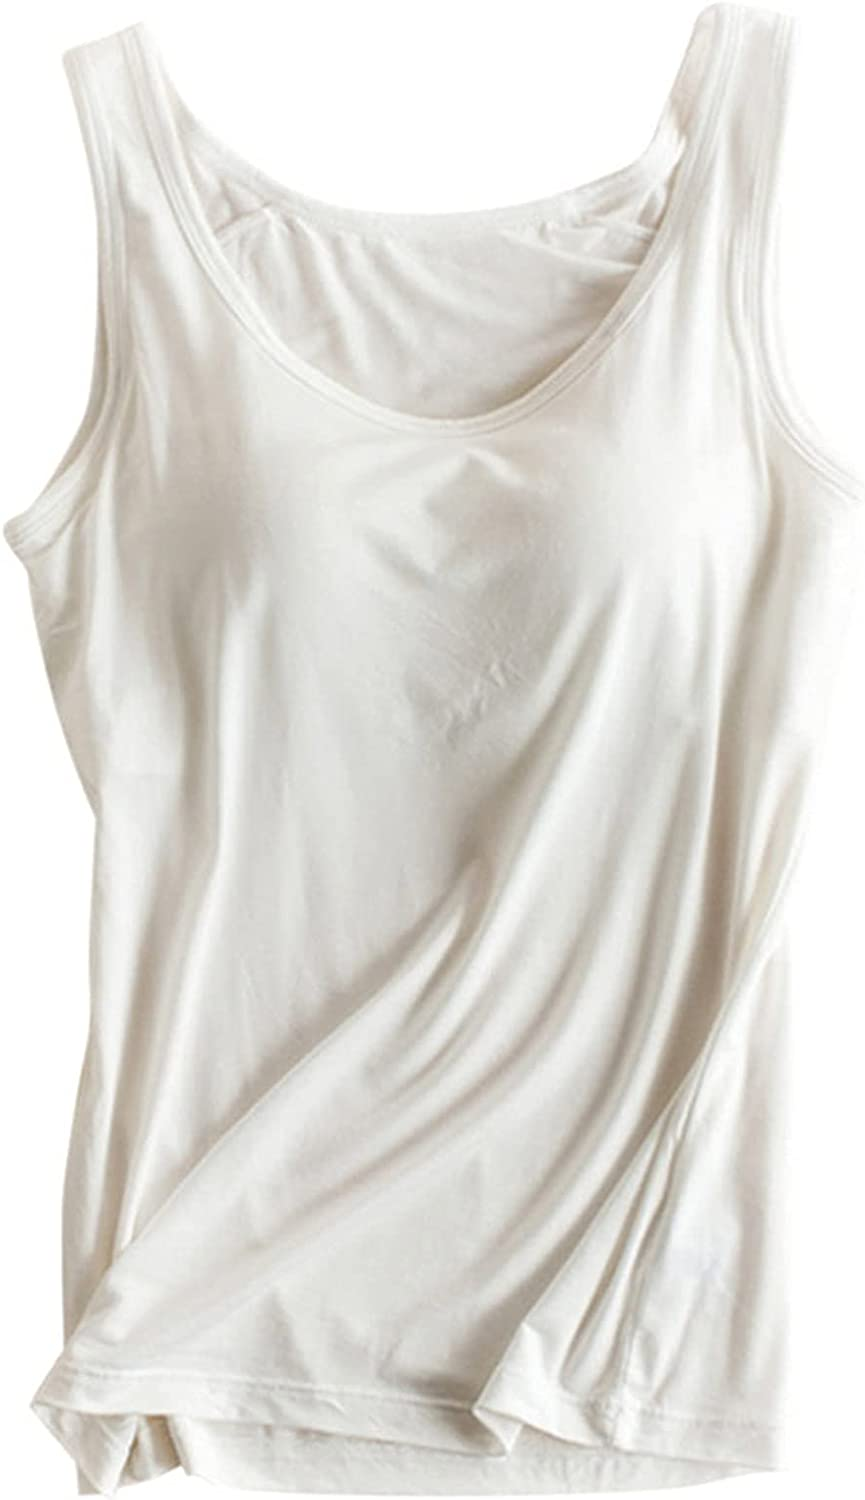 Pink Wind Bra Padded Cami Tanks Tops for Women Camisole with Built in Bra